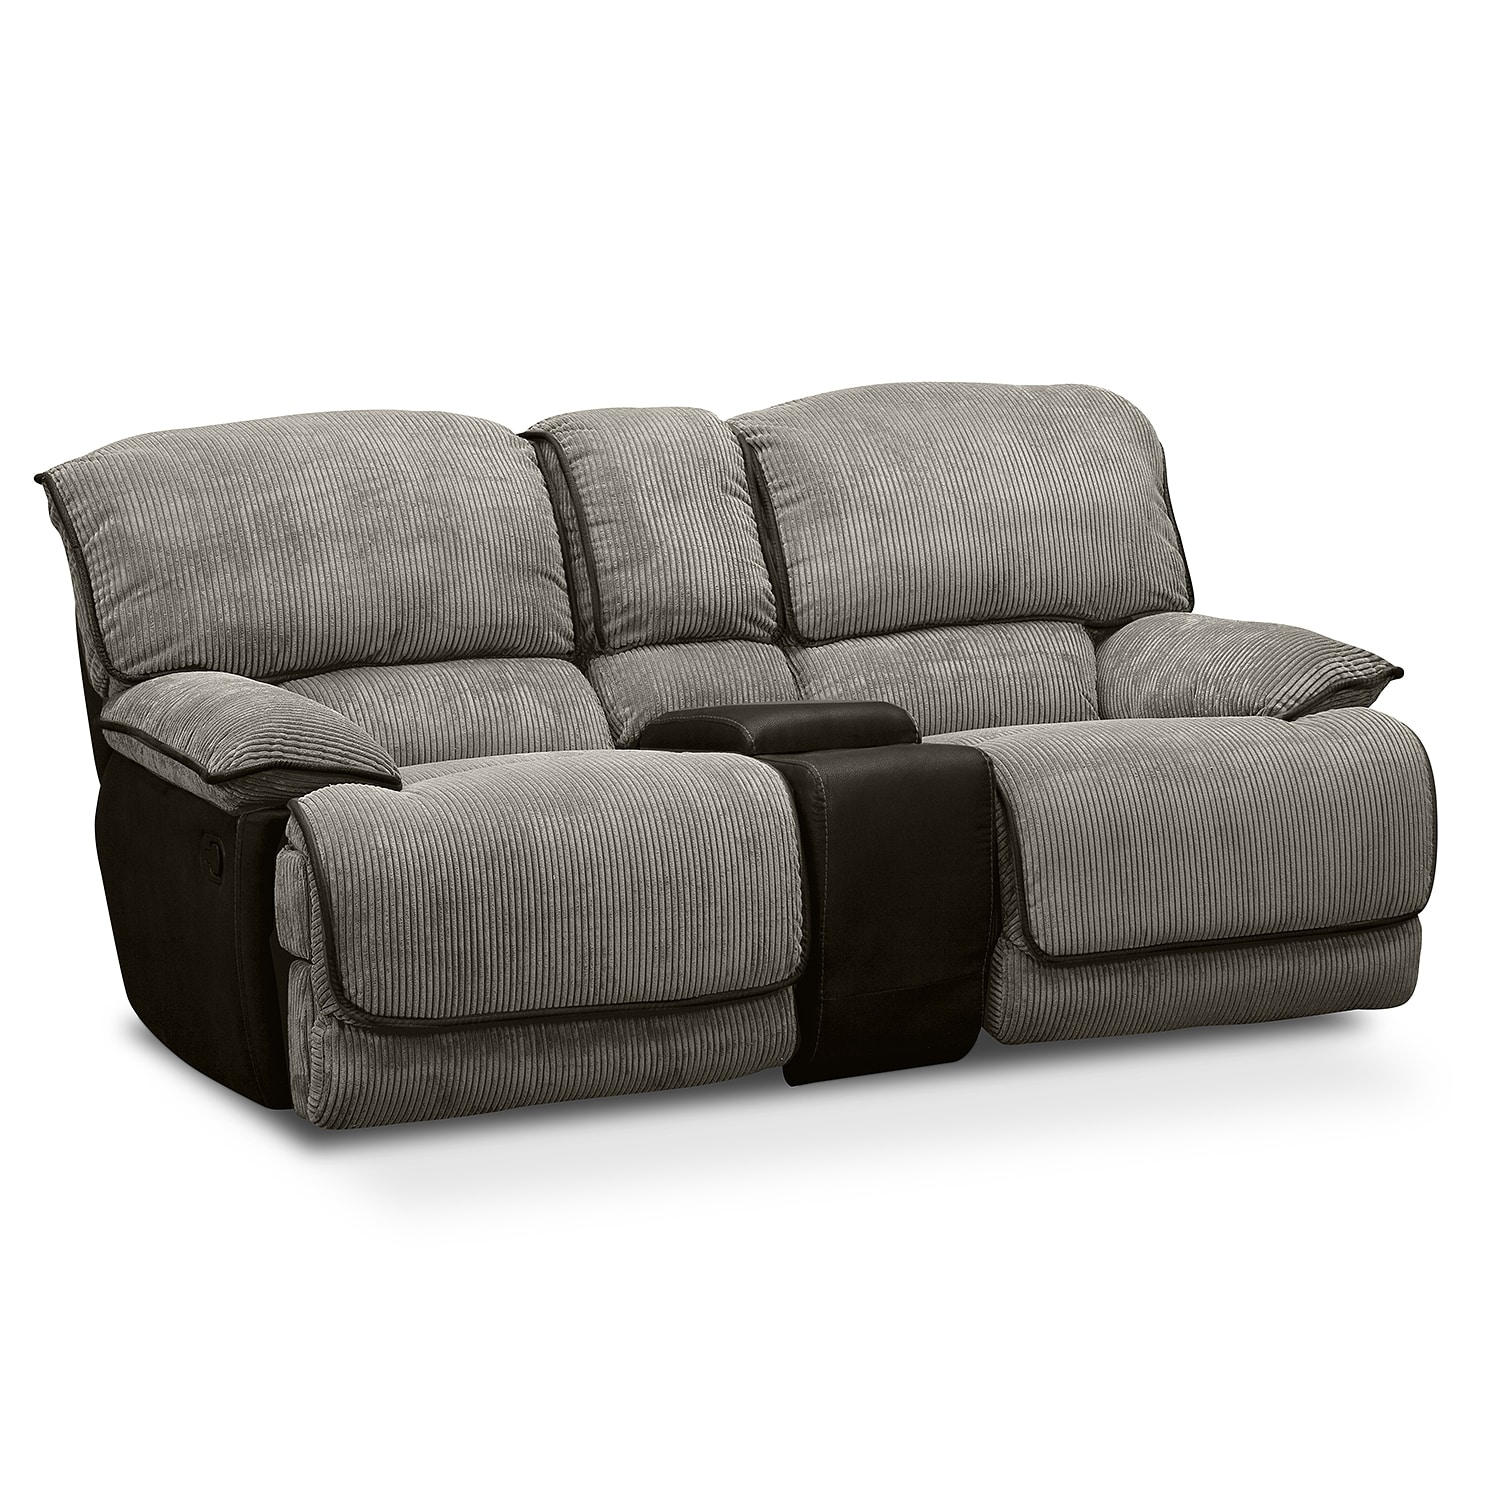 Hover to zoom  sc 1 st  Value City Furniture & Laguna Gliding Reclining Loveseat - Steel | Value City Furniture islam-shia.org